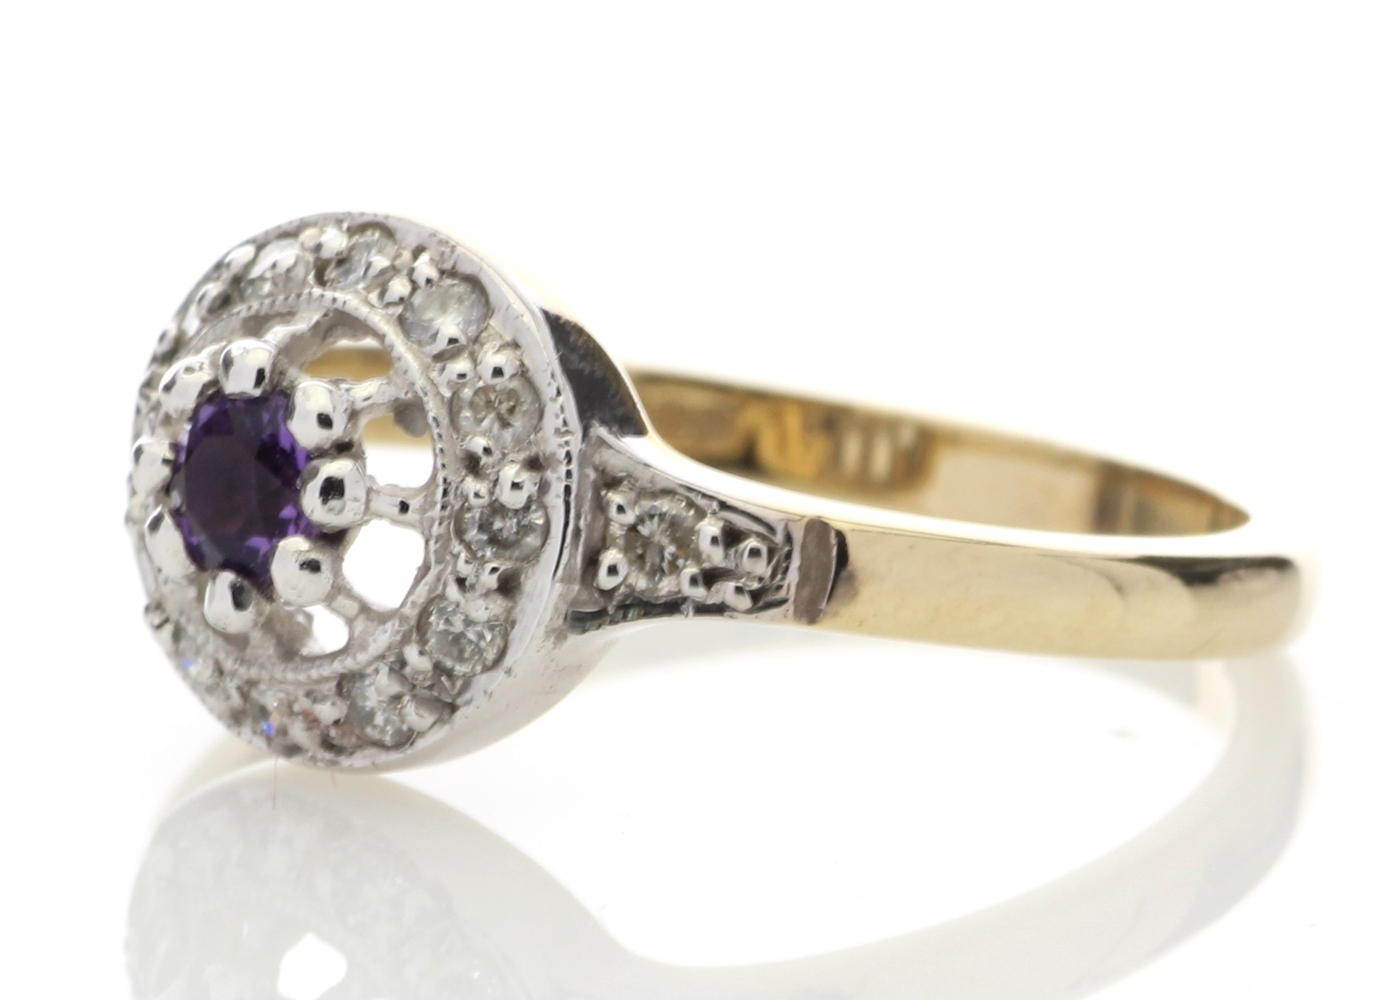 9ct Yellow Gold Round Cluster Claw Set Diamond Amethyst Ring 0.21 Carats - Image 2 of 4